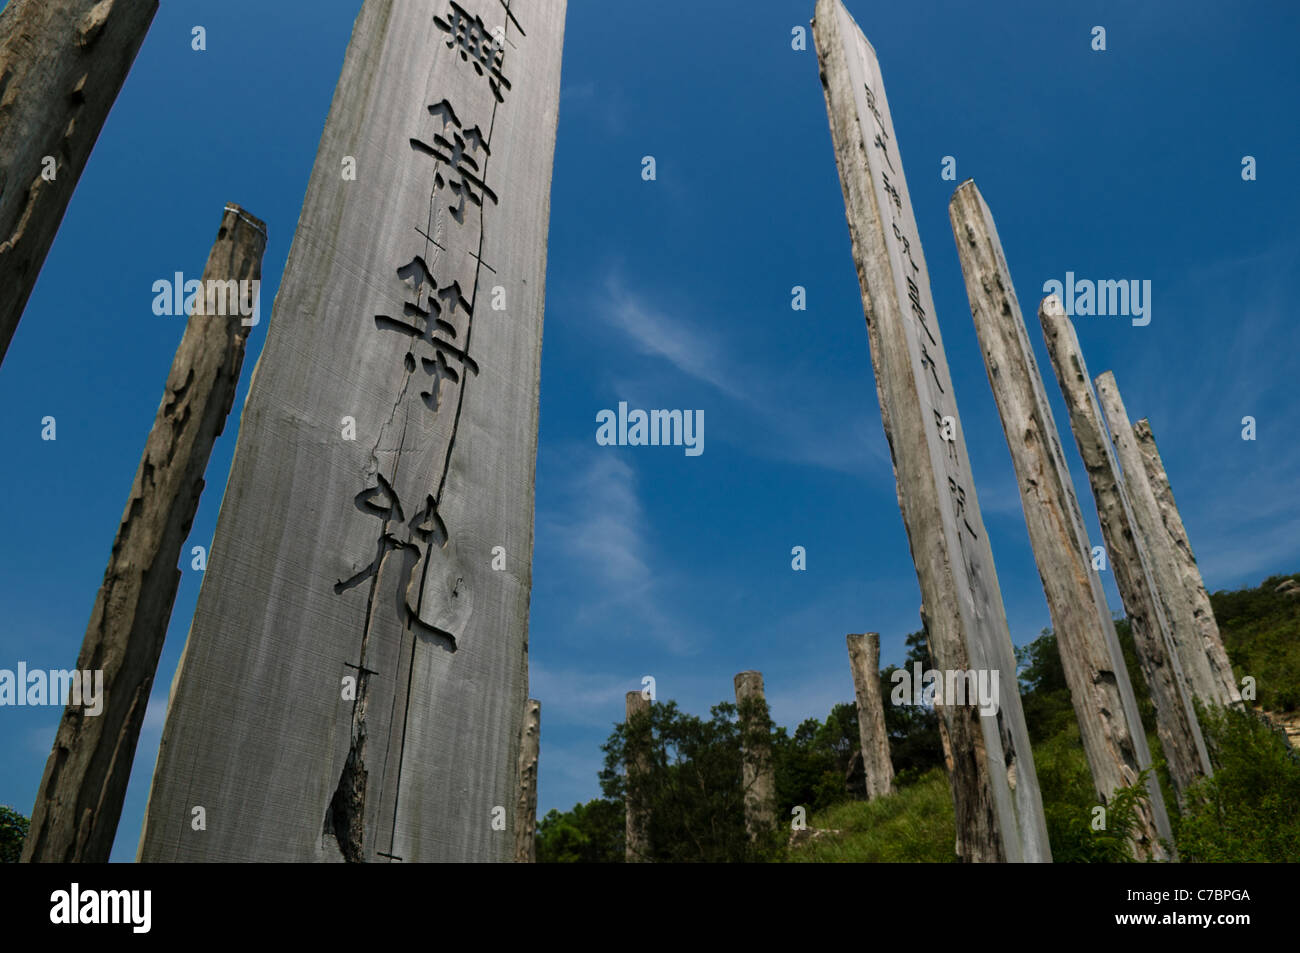 The Wisdom Path (formerly known as the Heart Sutra Inscription) Lantau Island Hong Kong - Stock Image